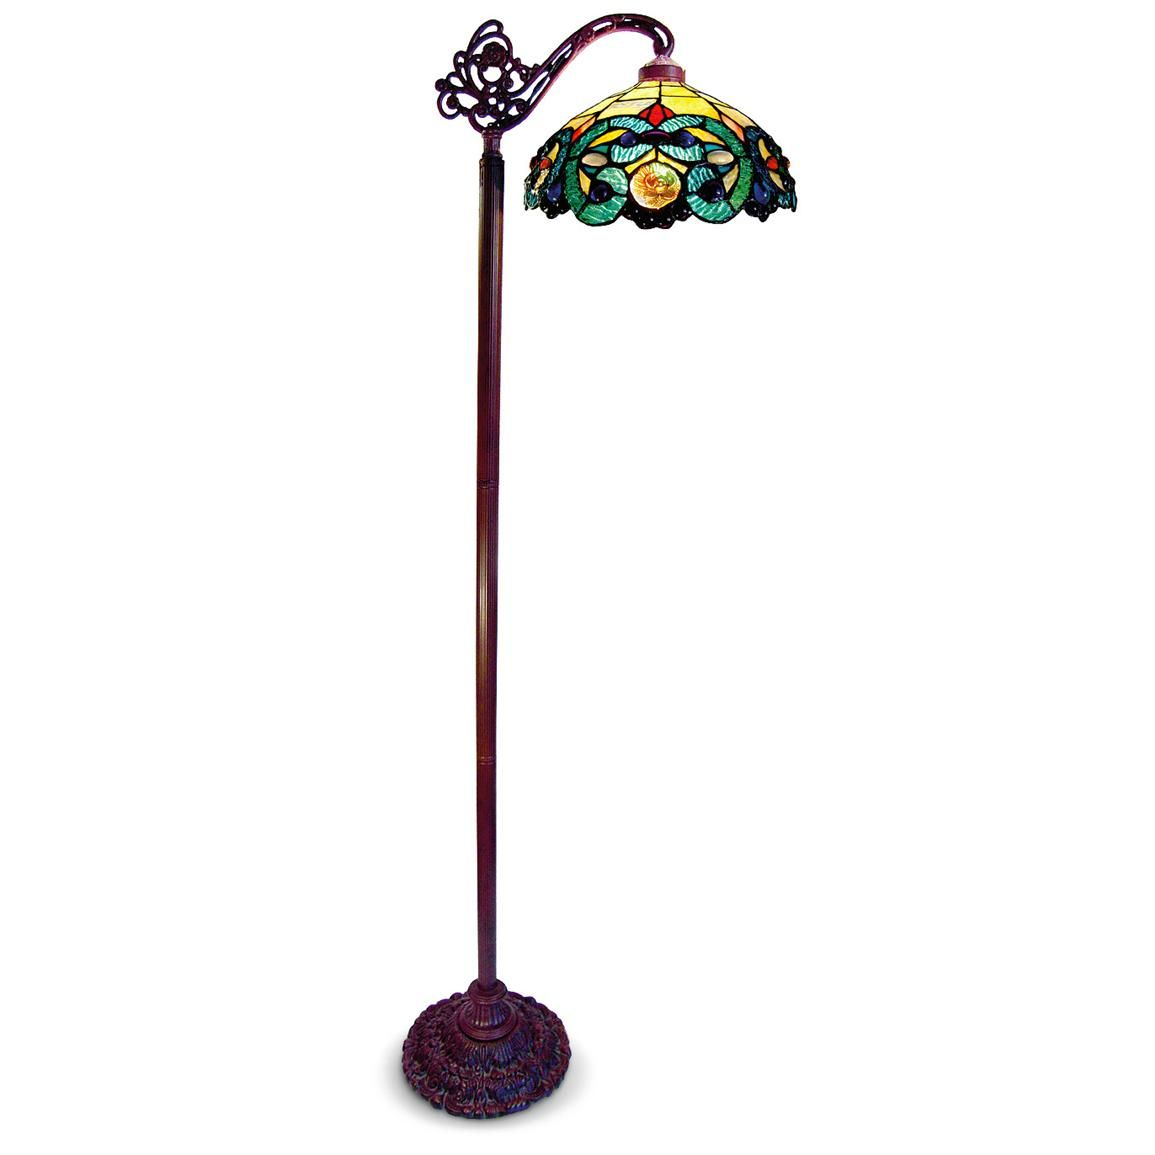 Tiffany style side arm stained glass floor lamp home decorating tiffany style side arm stained glass floor lamp aloadofball Choice Image